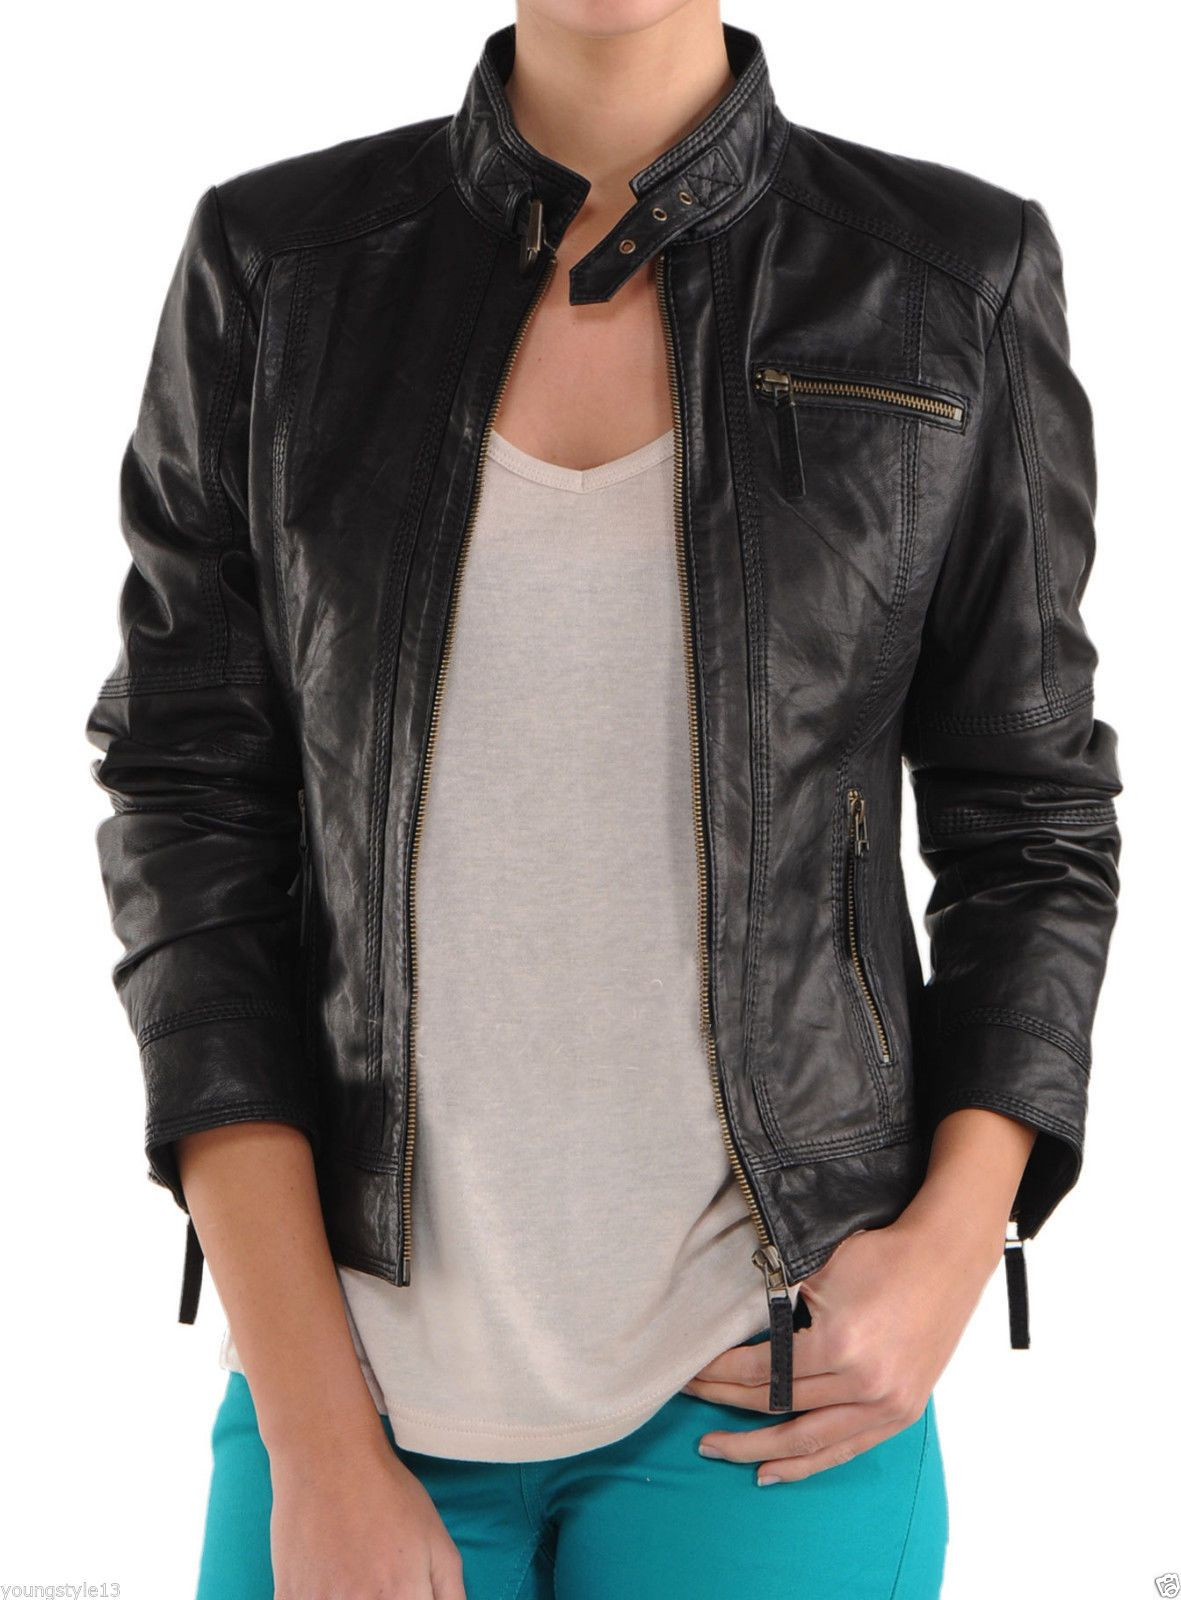 Luxury Black Jacket With Belted Tab Collar Front Zipper